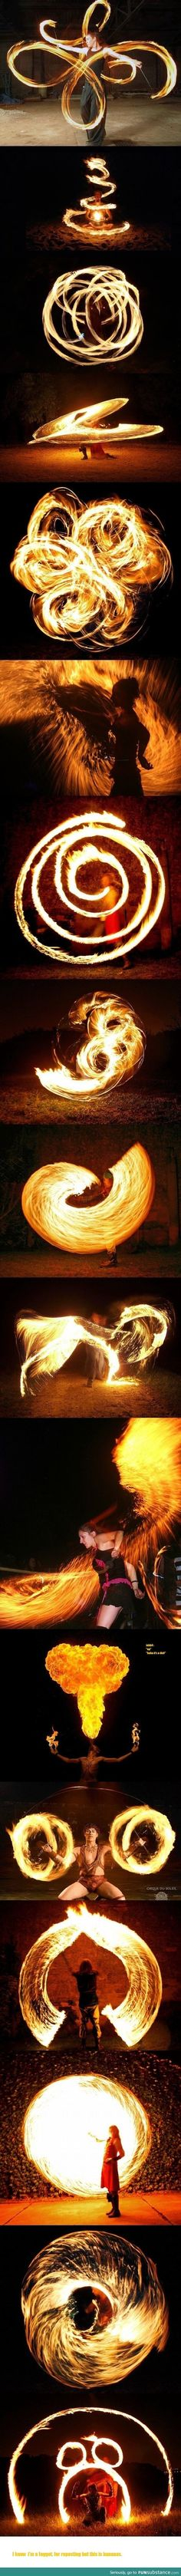 This collage of firespinning shows the creative power of a long exposure. With the shutter open, the camera is able to capture the complete movement of the firespinner, giving this feeling of flow and simplicity to the image. I hope to create some light p Foto Art, Jolie Photo, Avatar The Last Airbender, Long Exposure, Photomontage, Light Photography, Super Powers, Amazing Art, Awesome